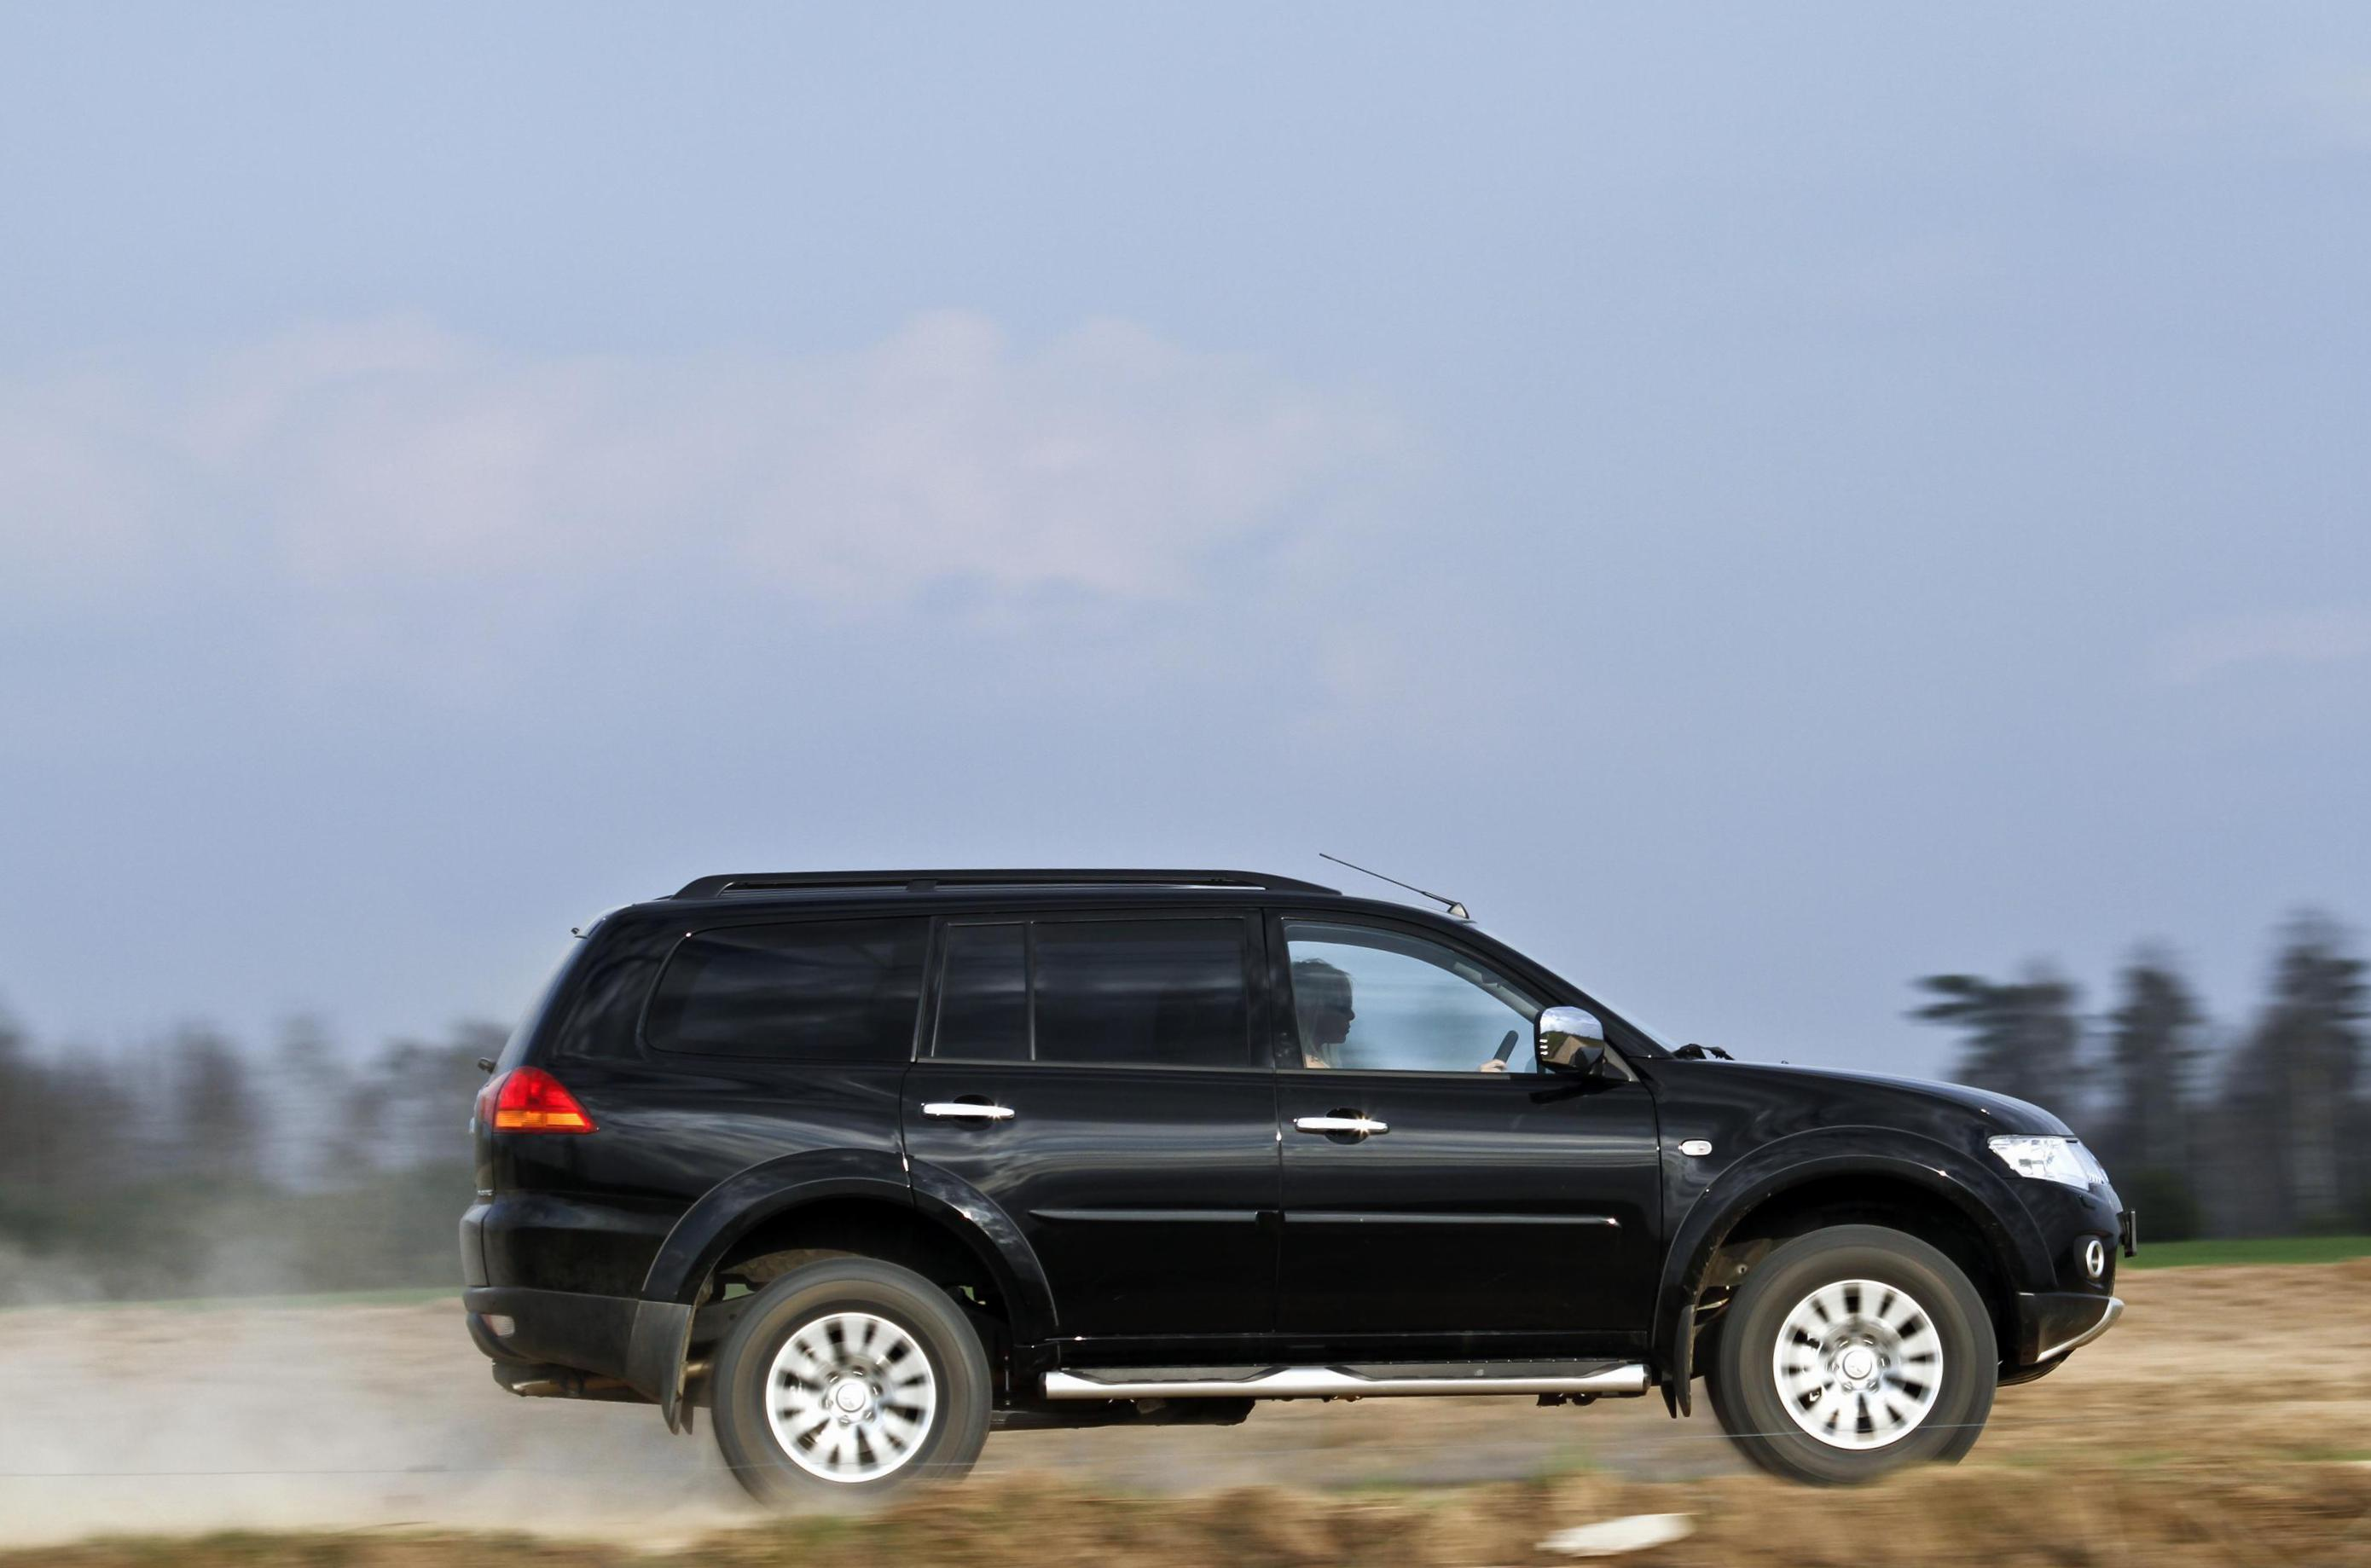 Mitsubishi Pajero Sport for sale 2009